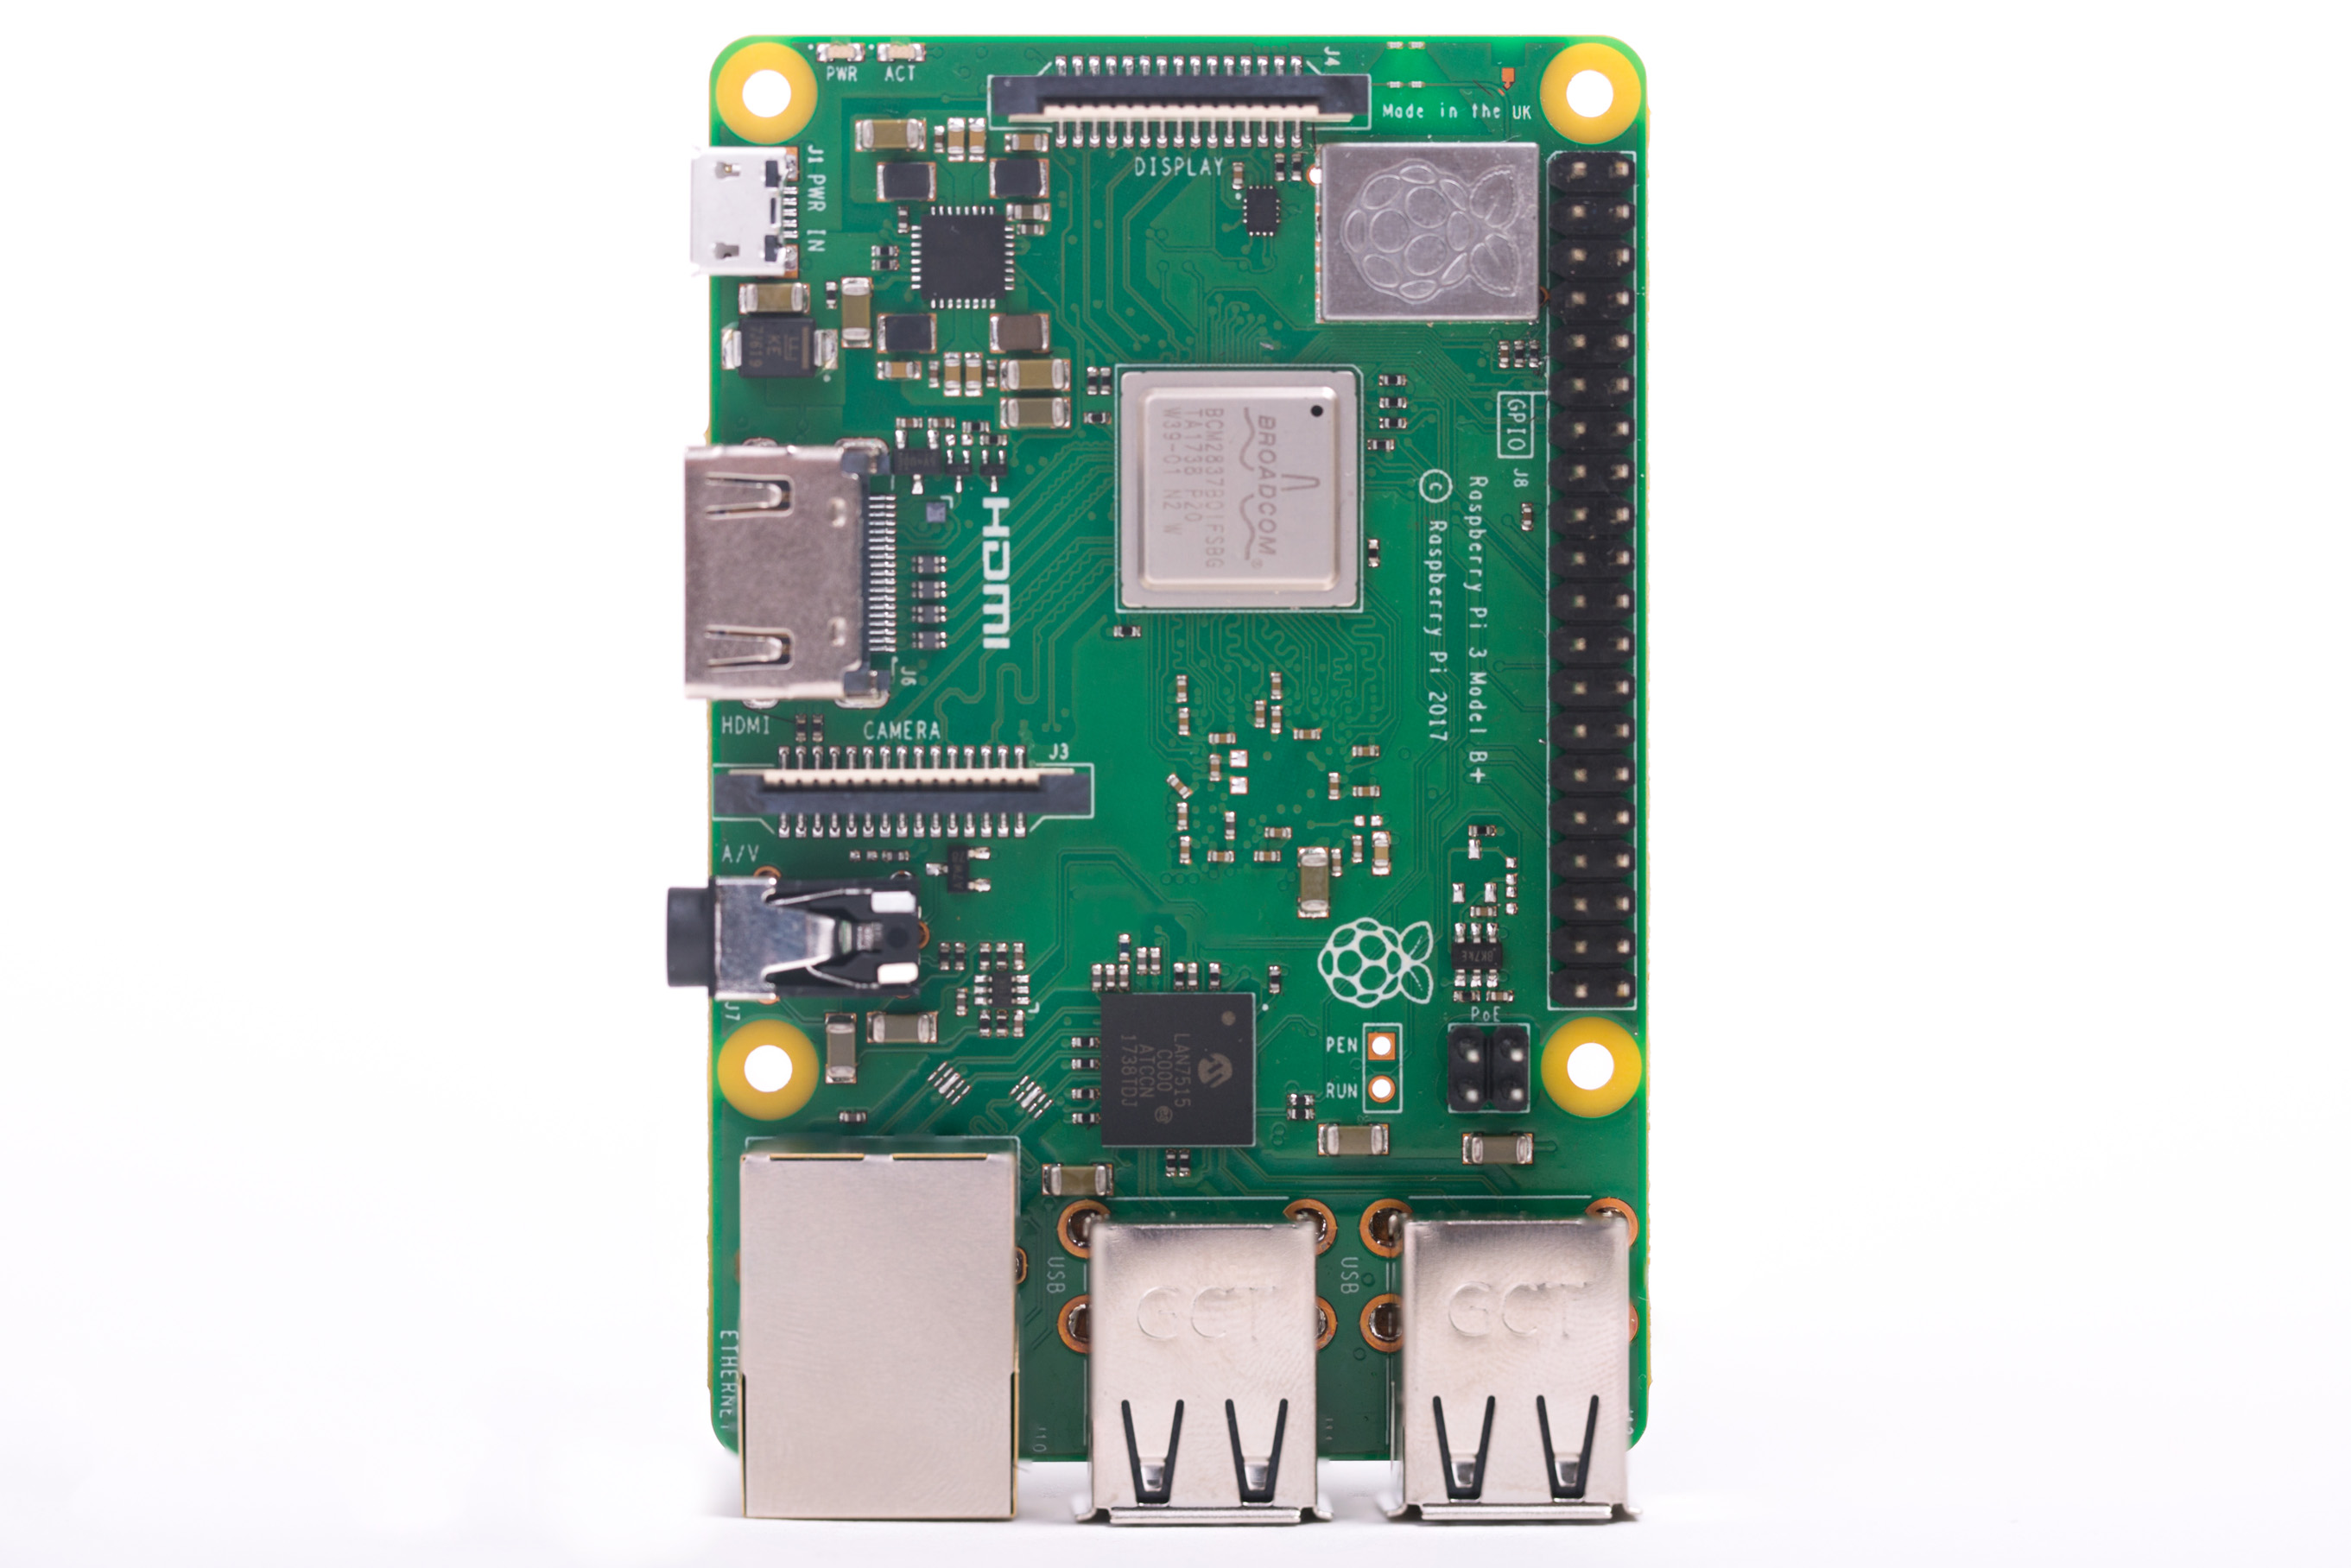 Raspberry Pi 3 Model B+ Launched: Offers More Power, Faster Networking